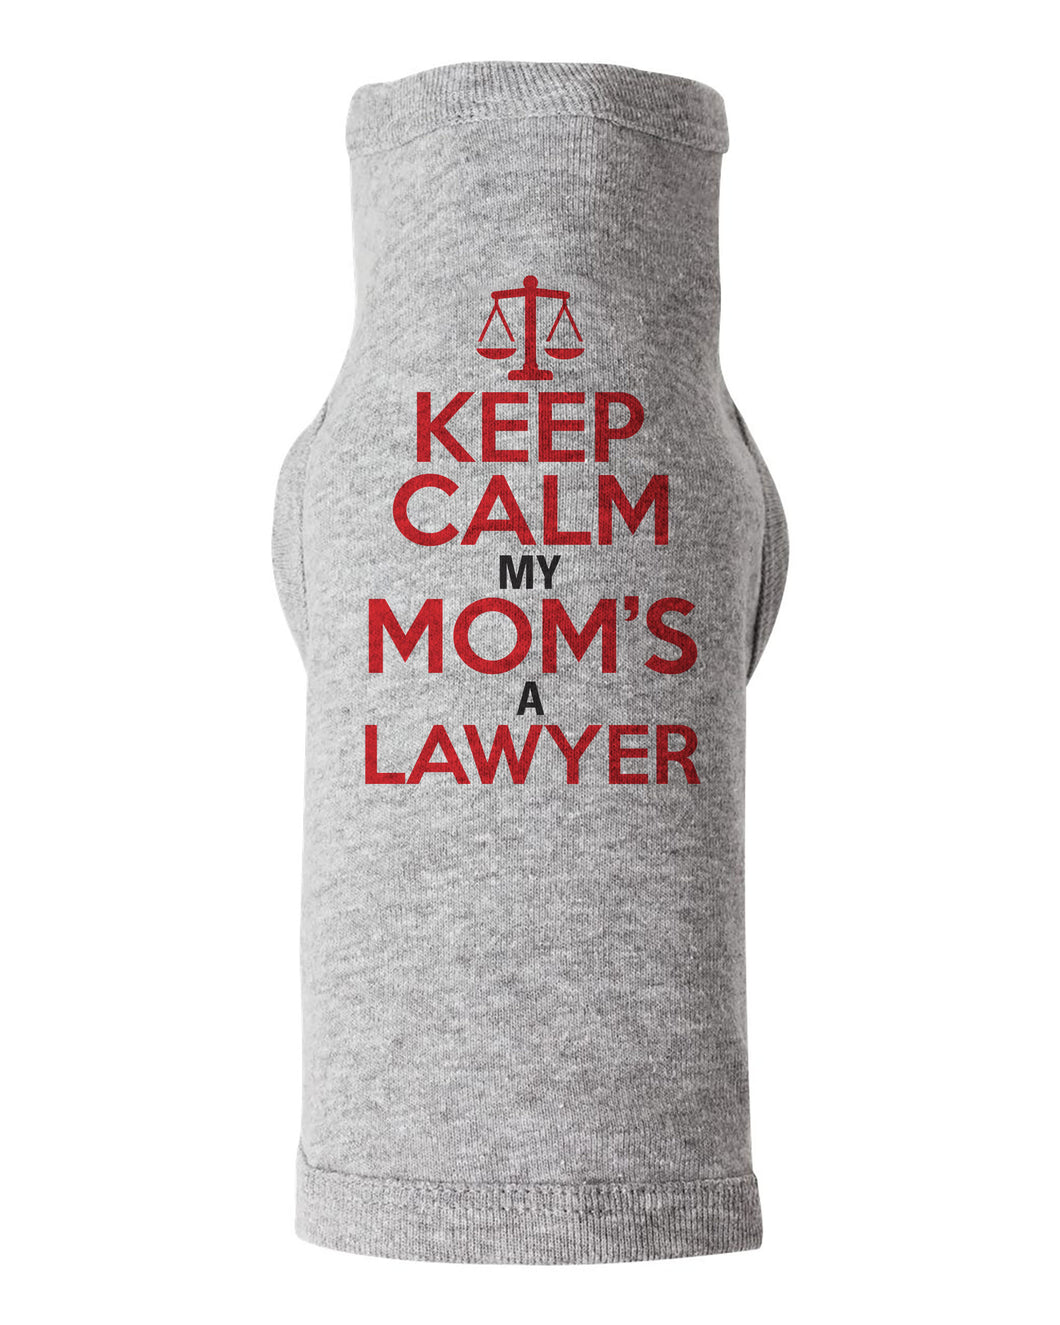 Keep Calm My Mom's A Lawyer / Dog Shirt